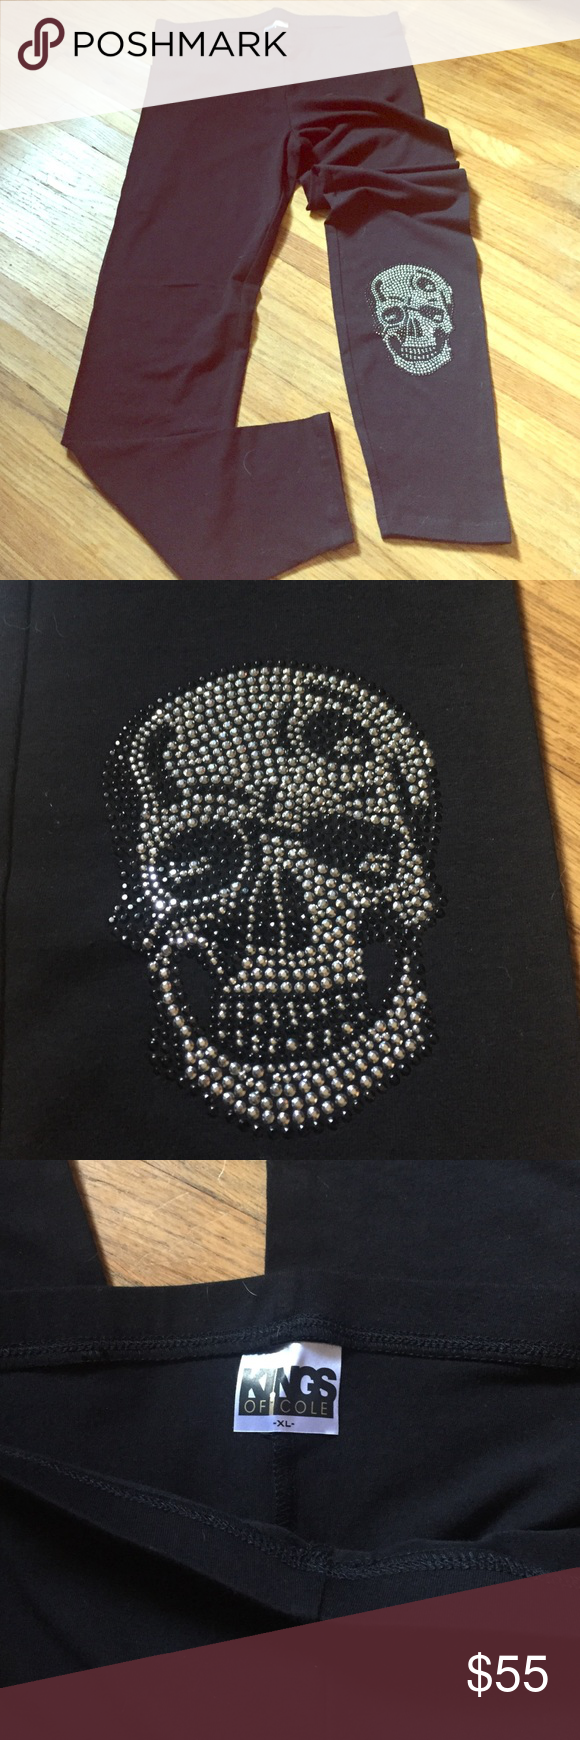 Kings of Cole super soft bling skull legging. Cute Kings of Cole super soft legging w/ silver & black bling embellished skull. Never worn but no tags because they don't send them with any when ordered online. So cute....I just have ALL their stuff and don't have a lot of places to wear them so I have to part with some 😔 Kings of Cole Pants Leggings